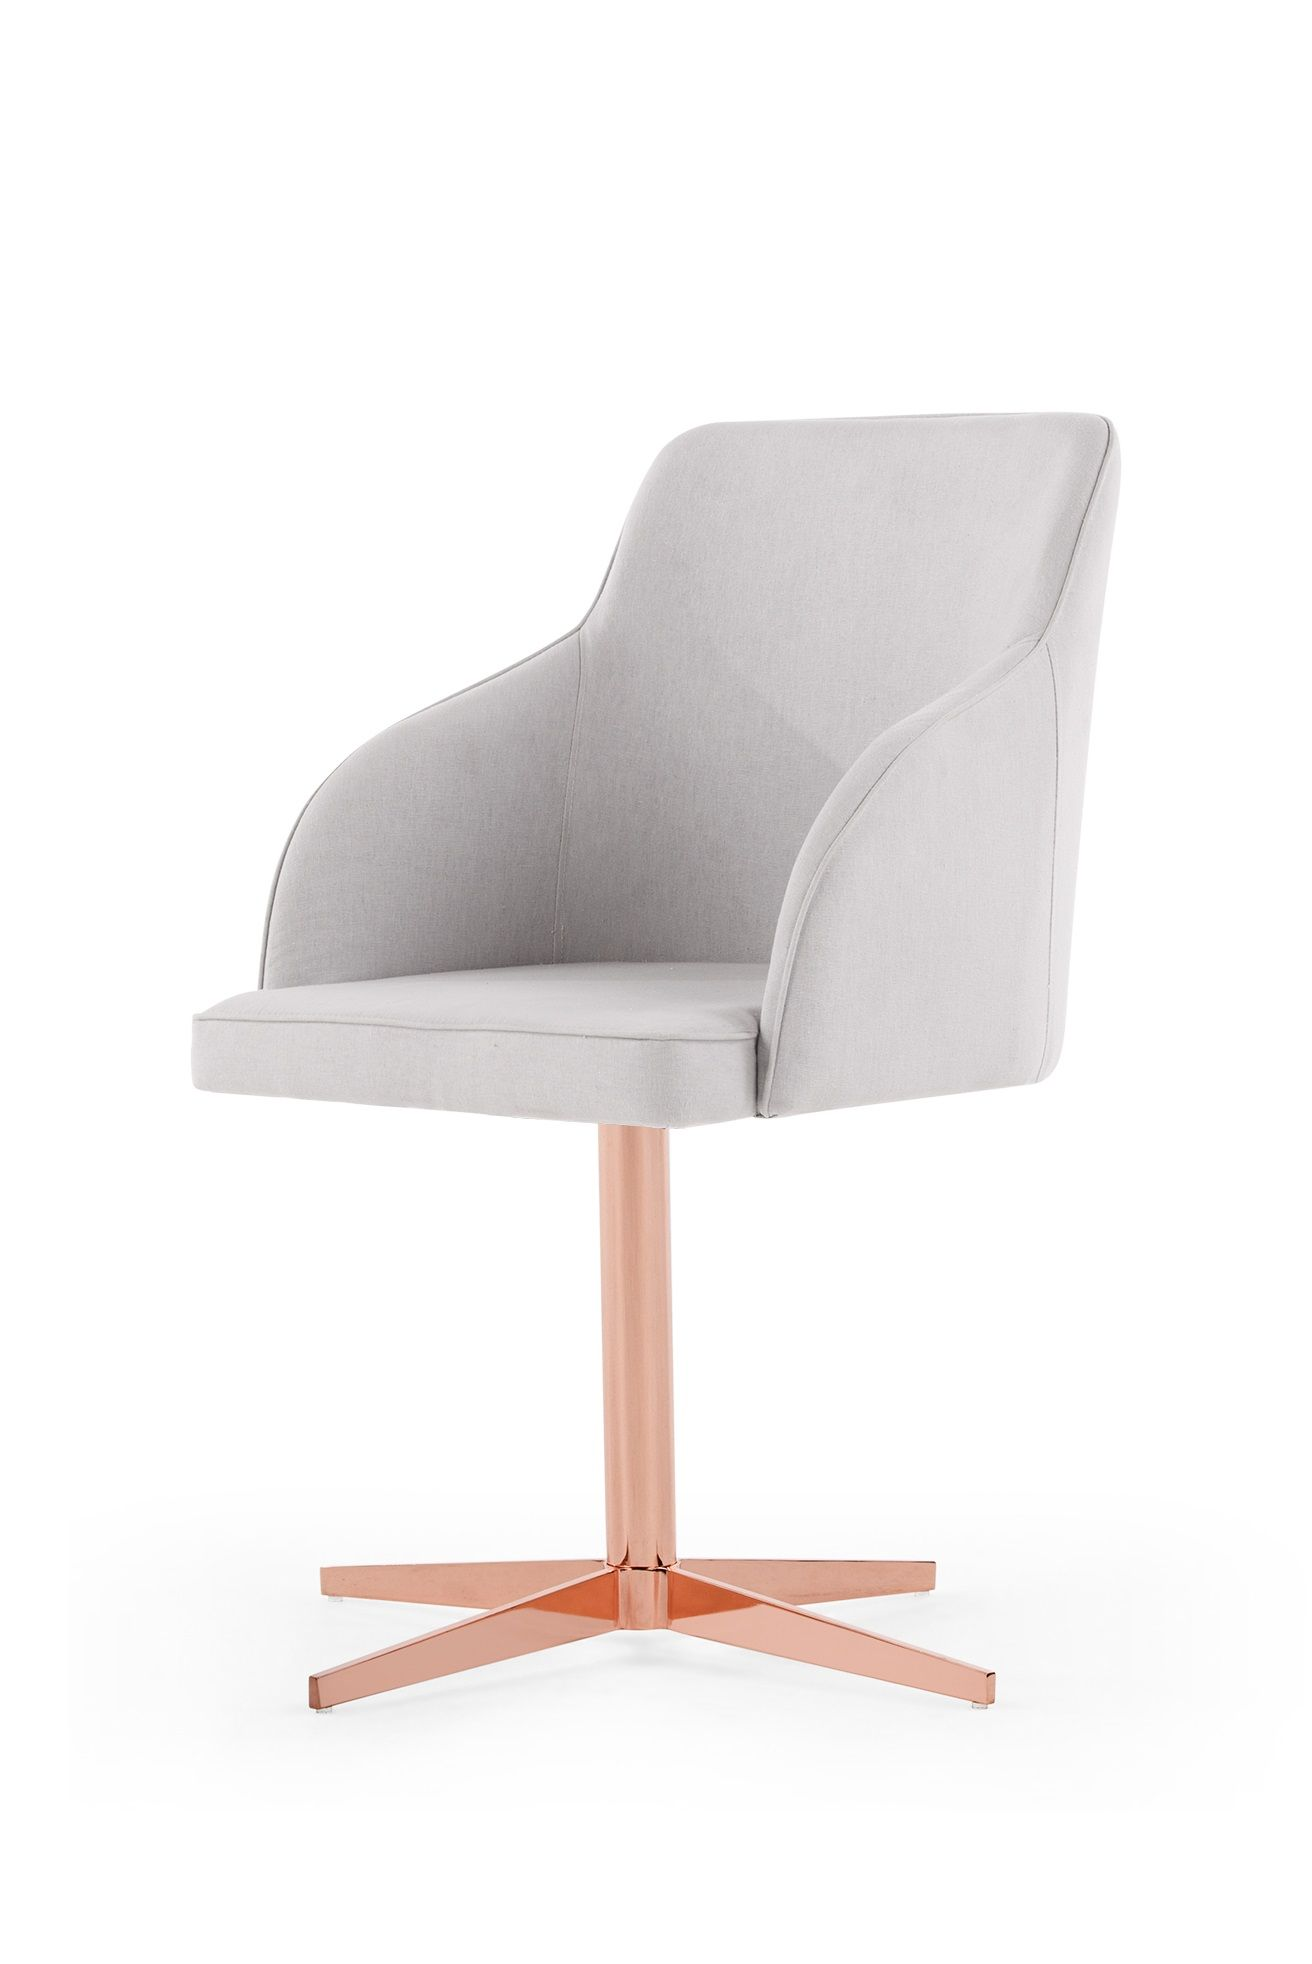 desk chair gold l hitchcock chairs keira office cloud grey and copper gray bedrooms